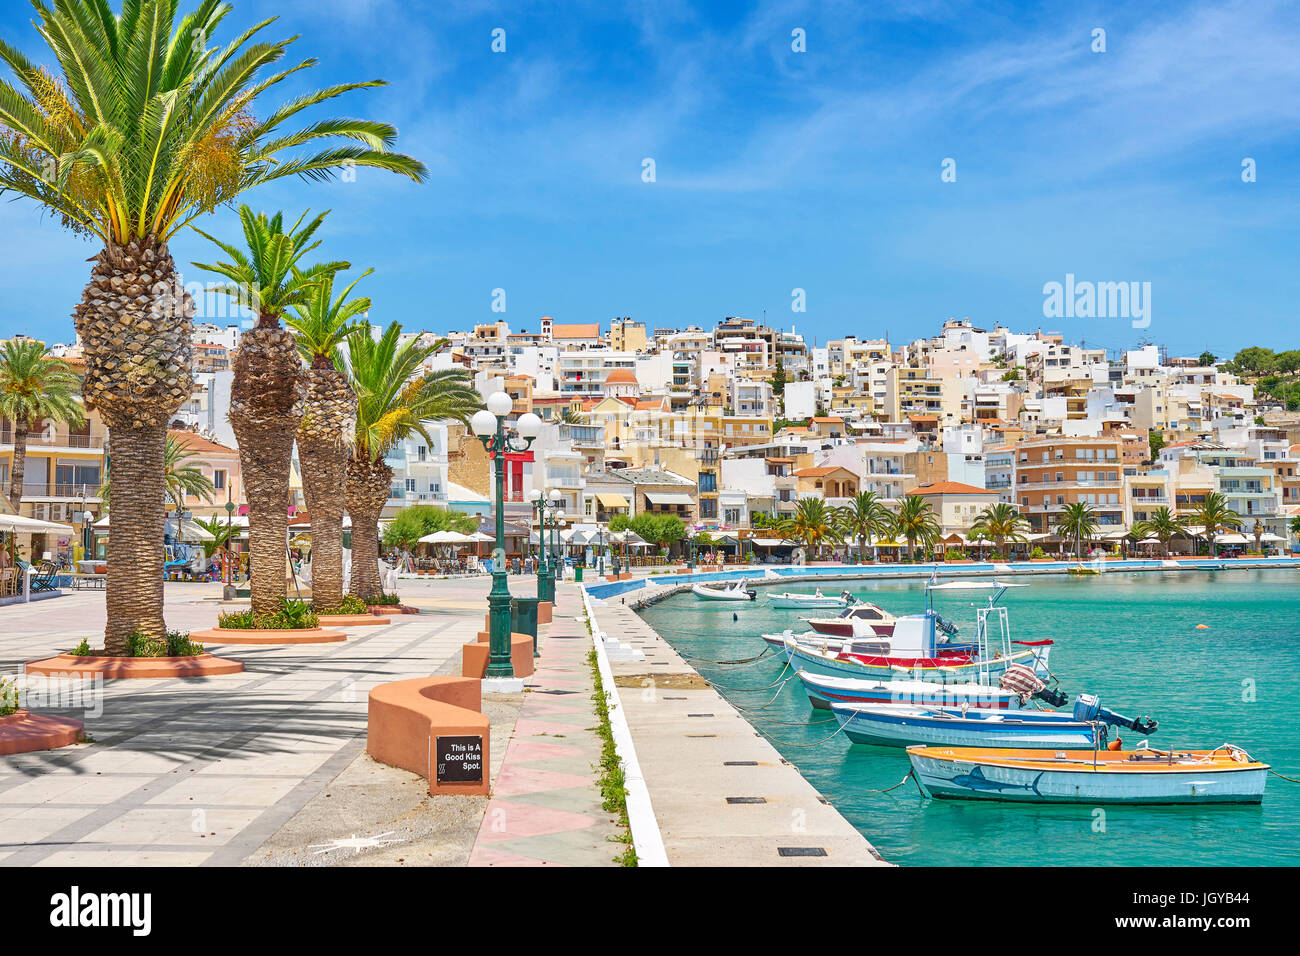 Harbor in Sitia, Crete Island, Greece - Stock Image